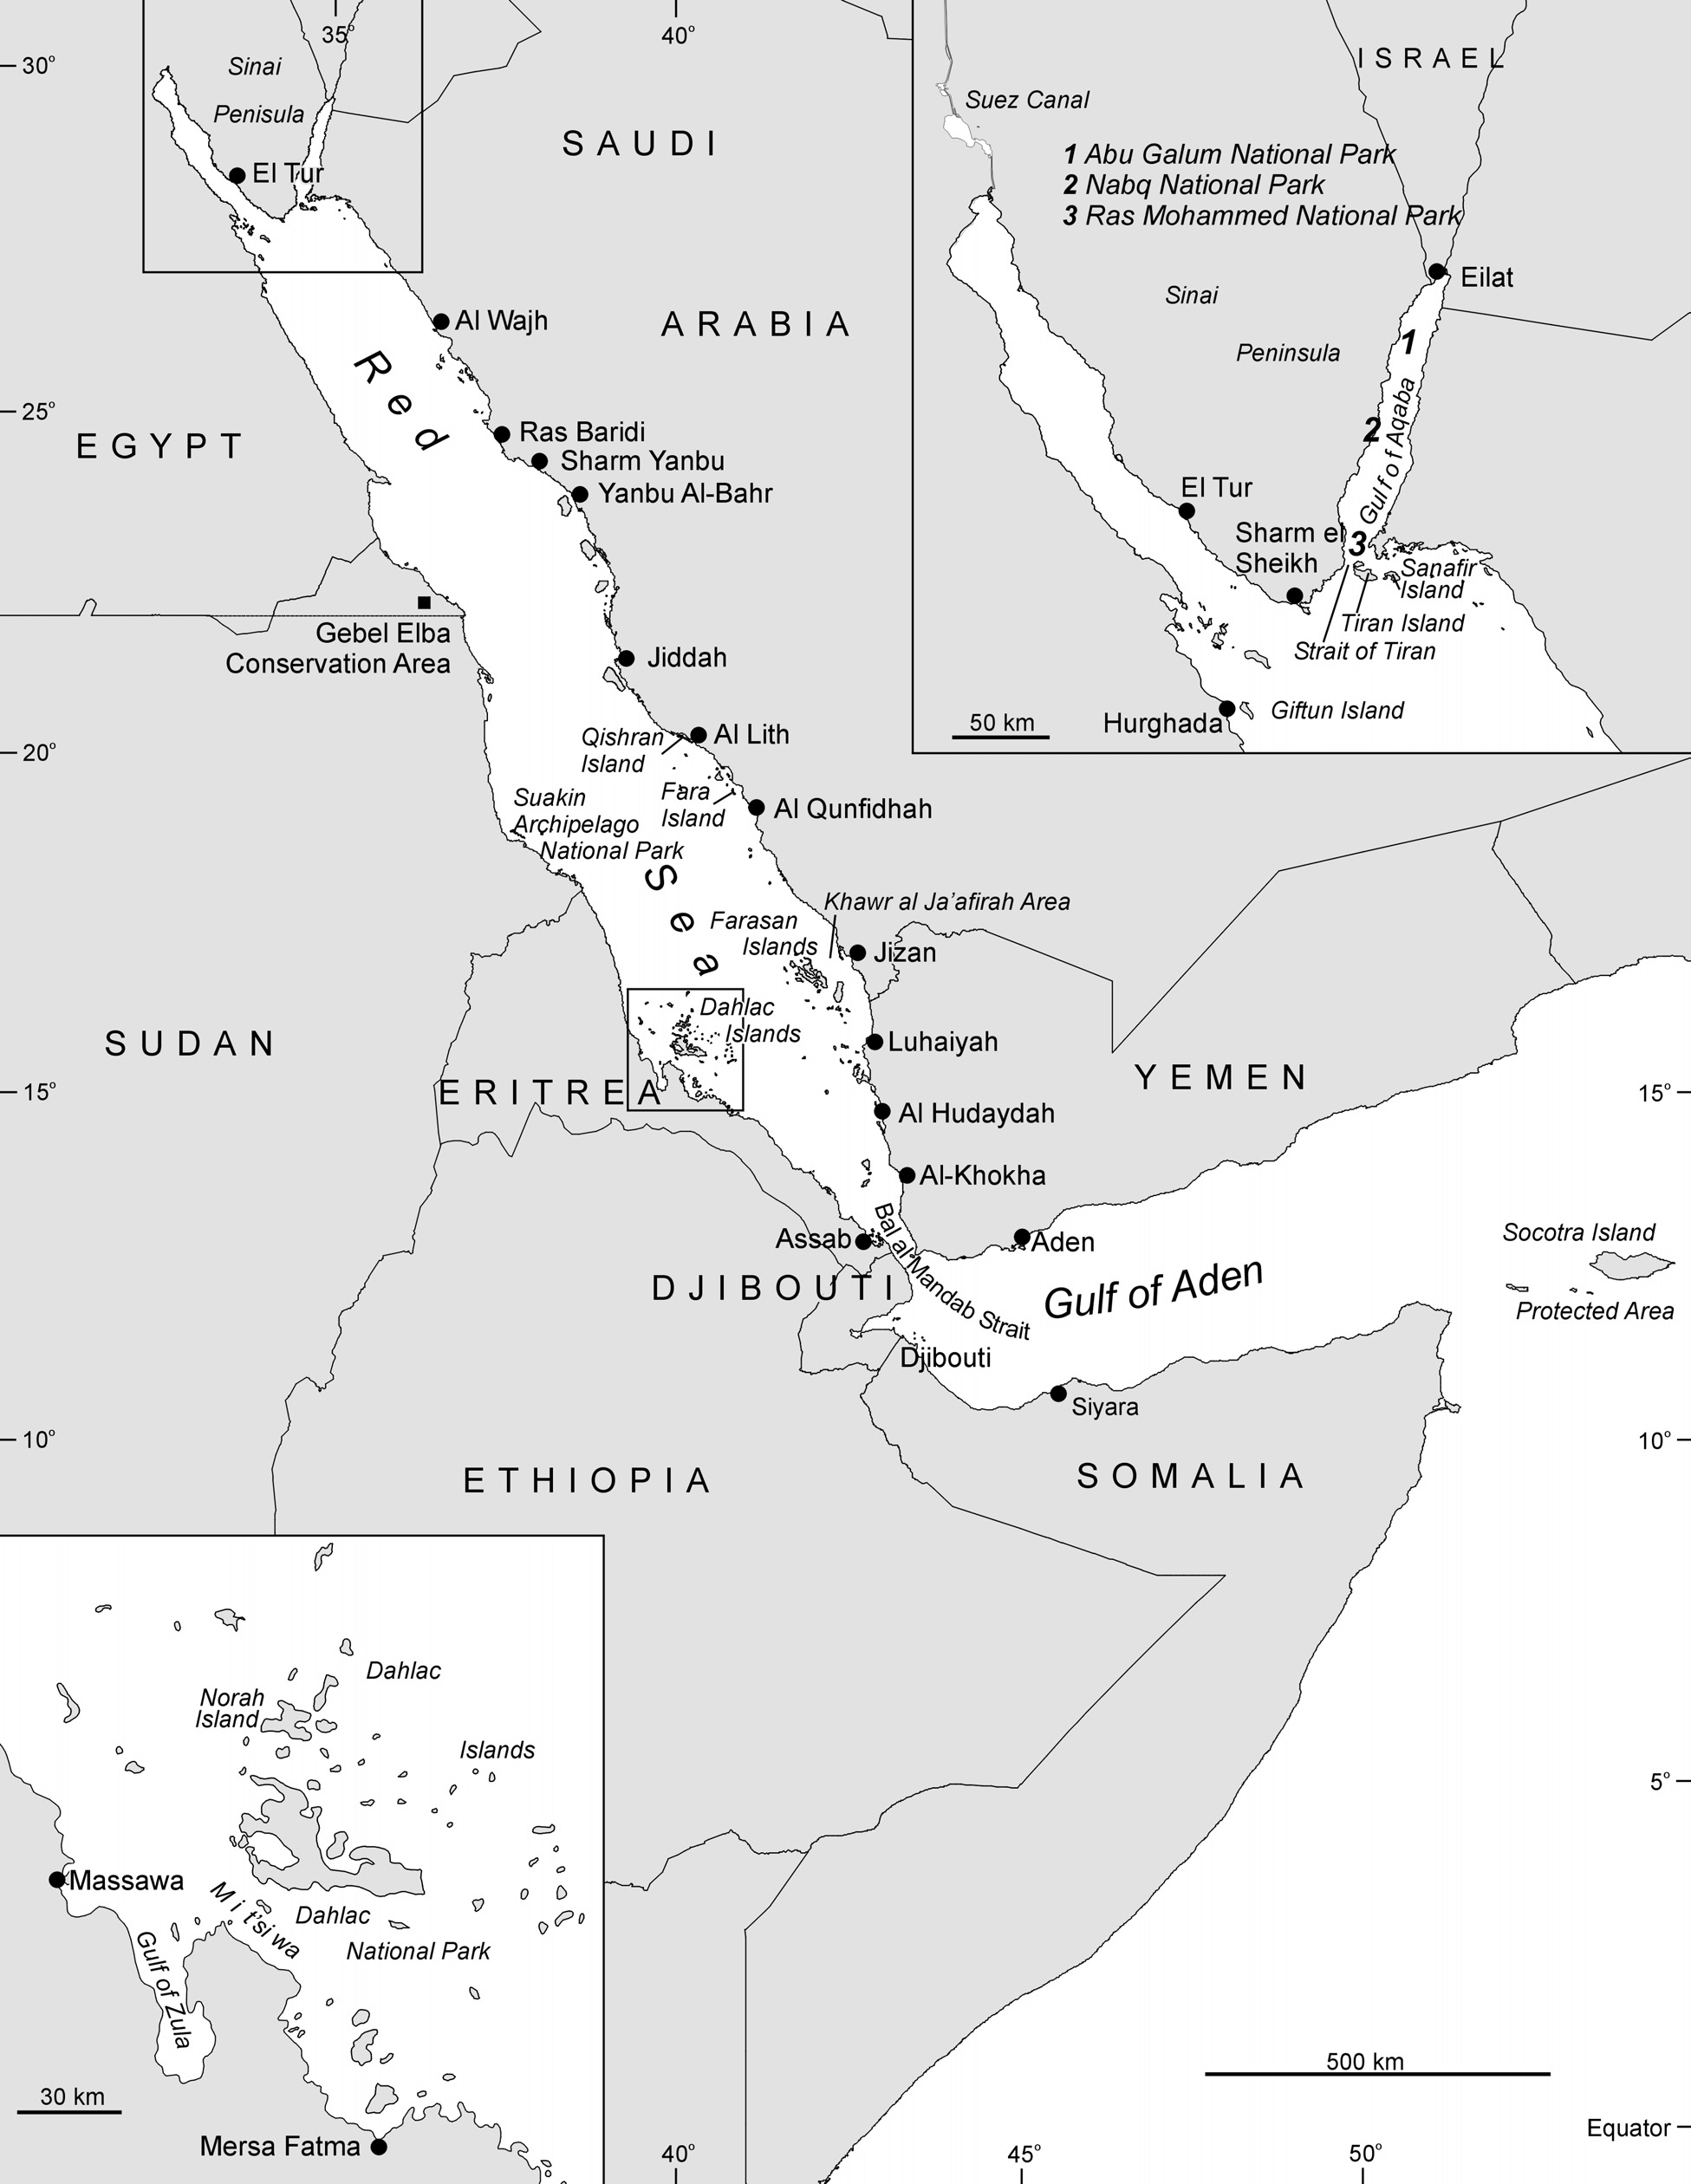 Figure 2.3 The Red Sea showing place names mentioned in the text.